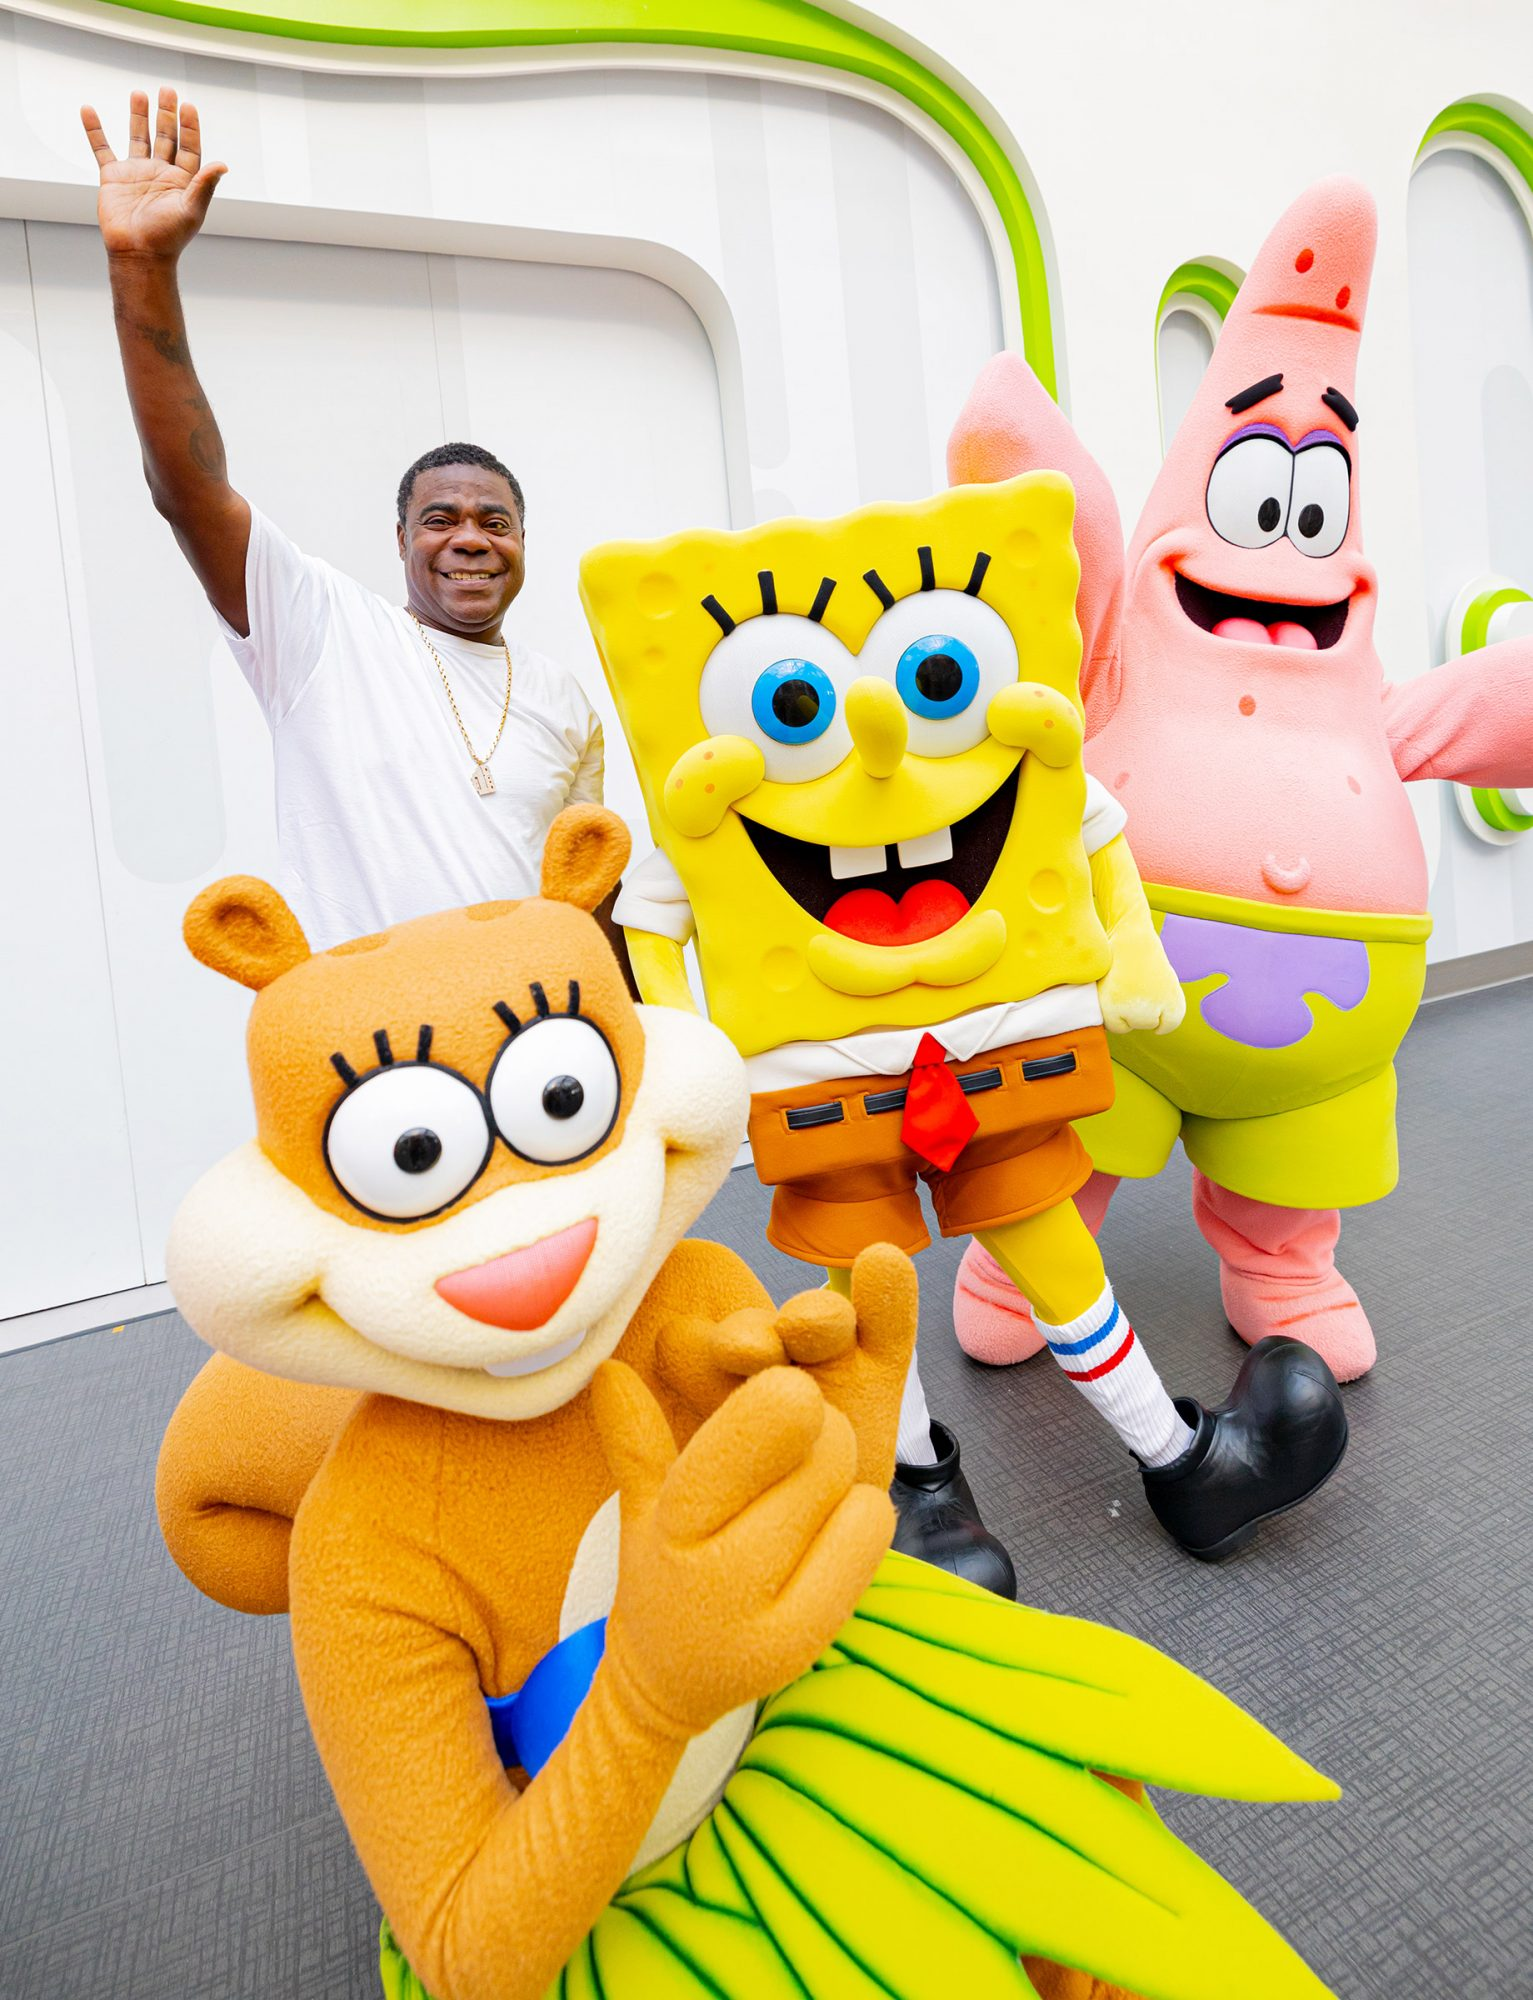 Tracy Morgan wishes SpongeBob SquarePants a happy birthday! The comedian stopped by Nickelodeon Universe Theme Park at American Dream in NJ to join in the festivities at SpongeBob's Big Birthday Blowout.